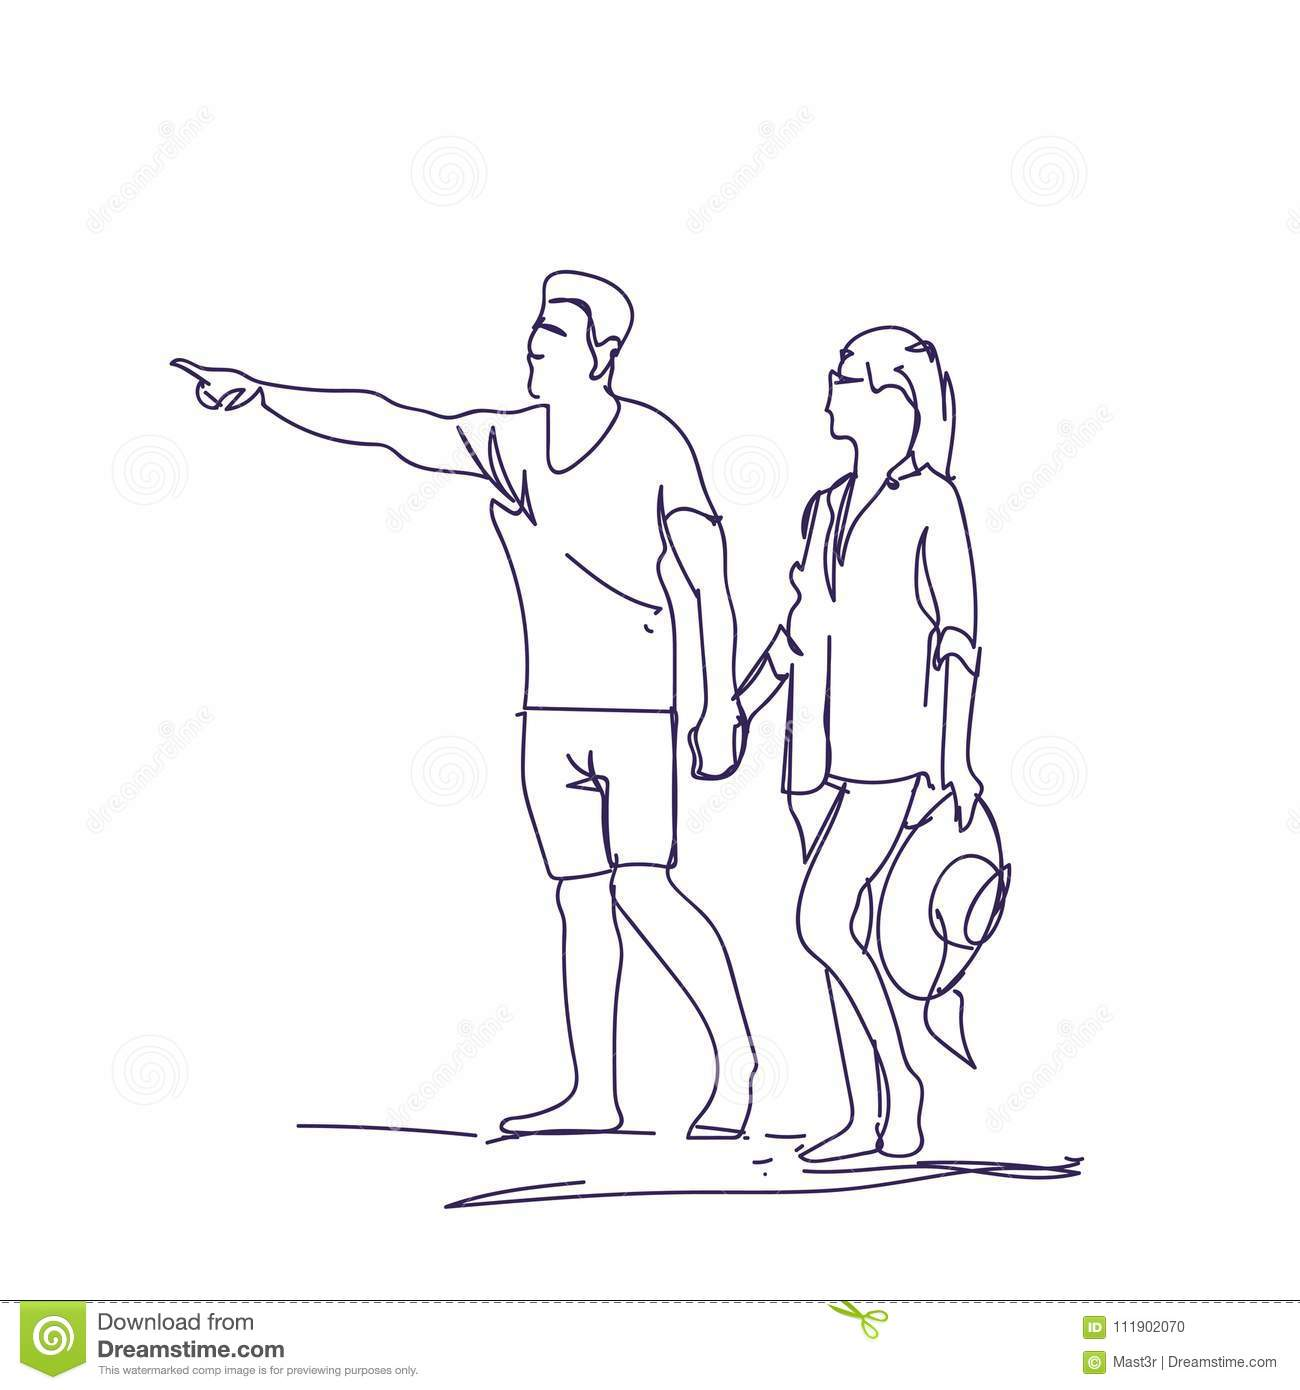 Sketch couple walking holding hands doodle man and woman over white background